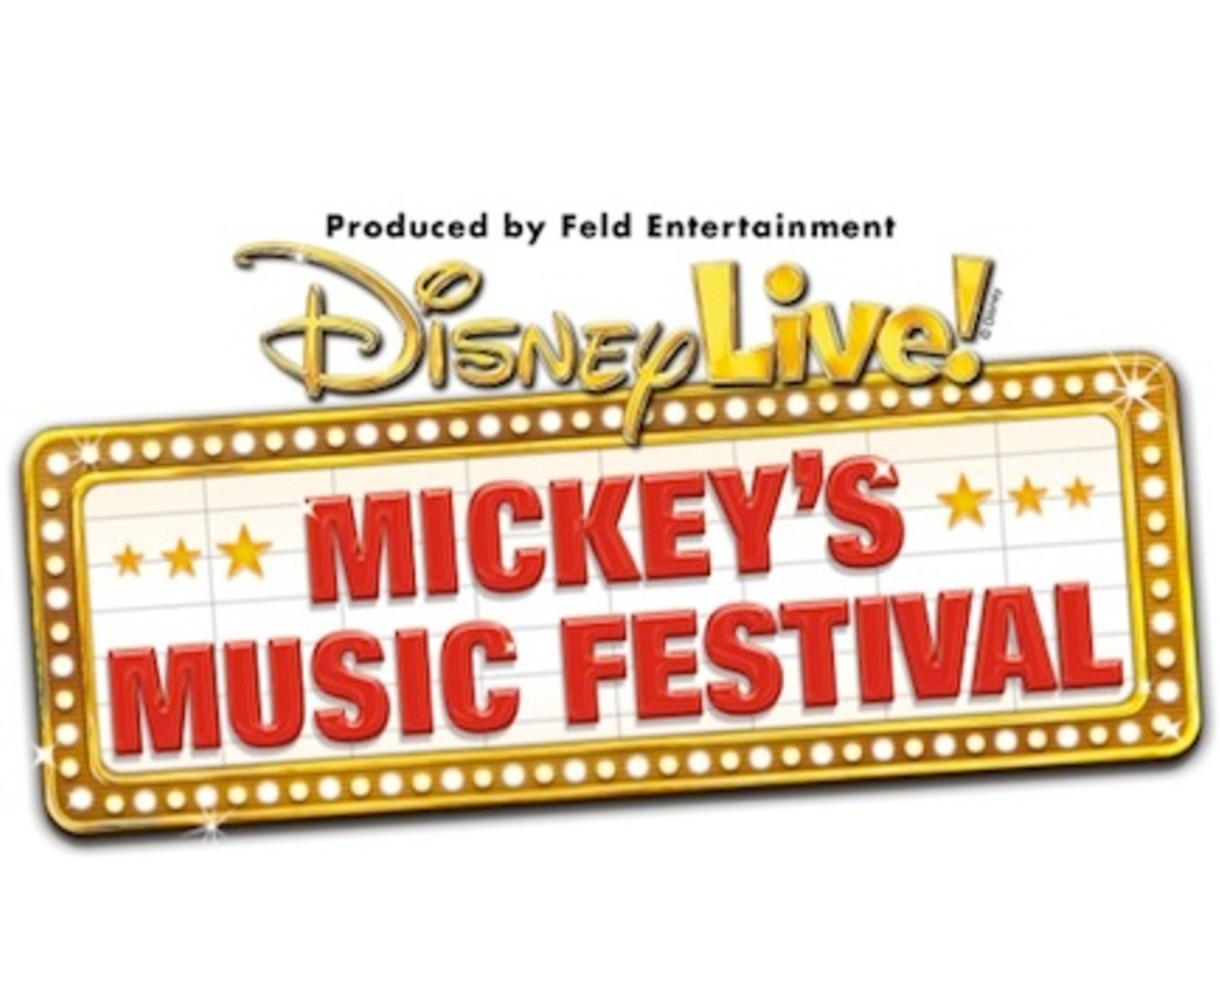 $15 for Disney Live! Mickey's Music Festival at Lyric Opera House on Dec 7 & 8 (up to 63% off)